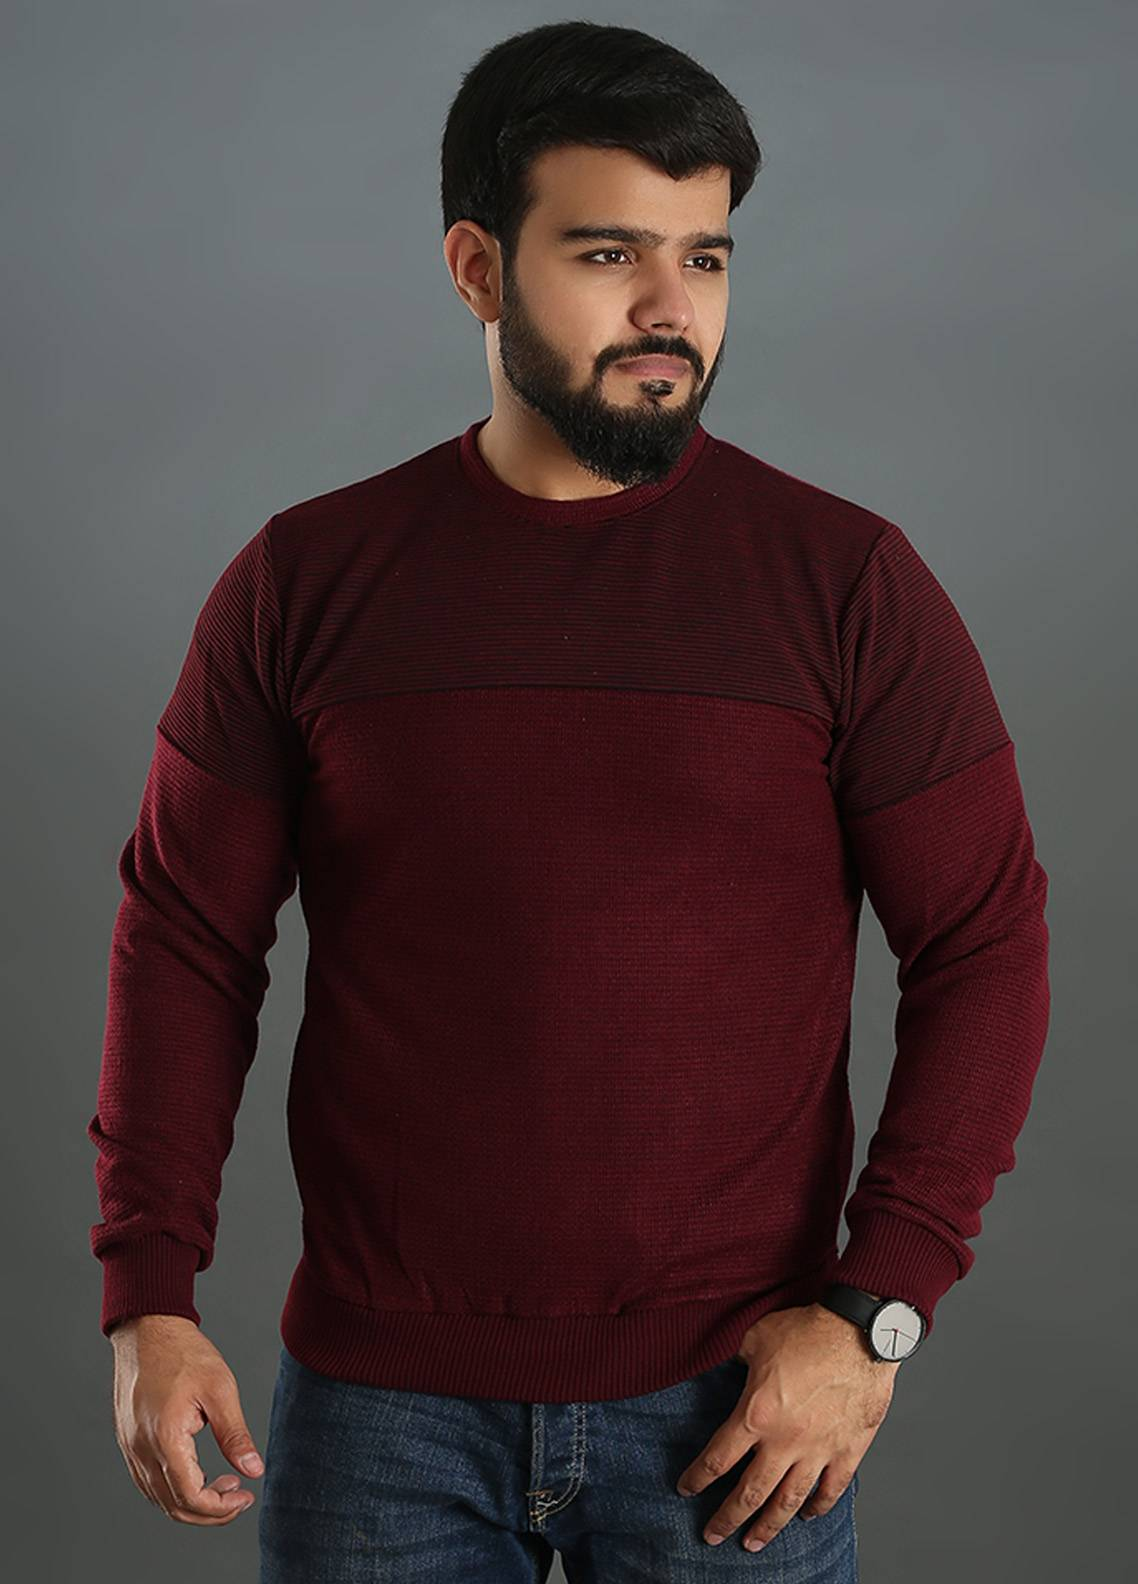 Sanaulla Exclusive Range Jersey Round Neck T-Shirts for Men - Maroon SAM18TS 07